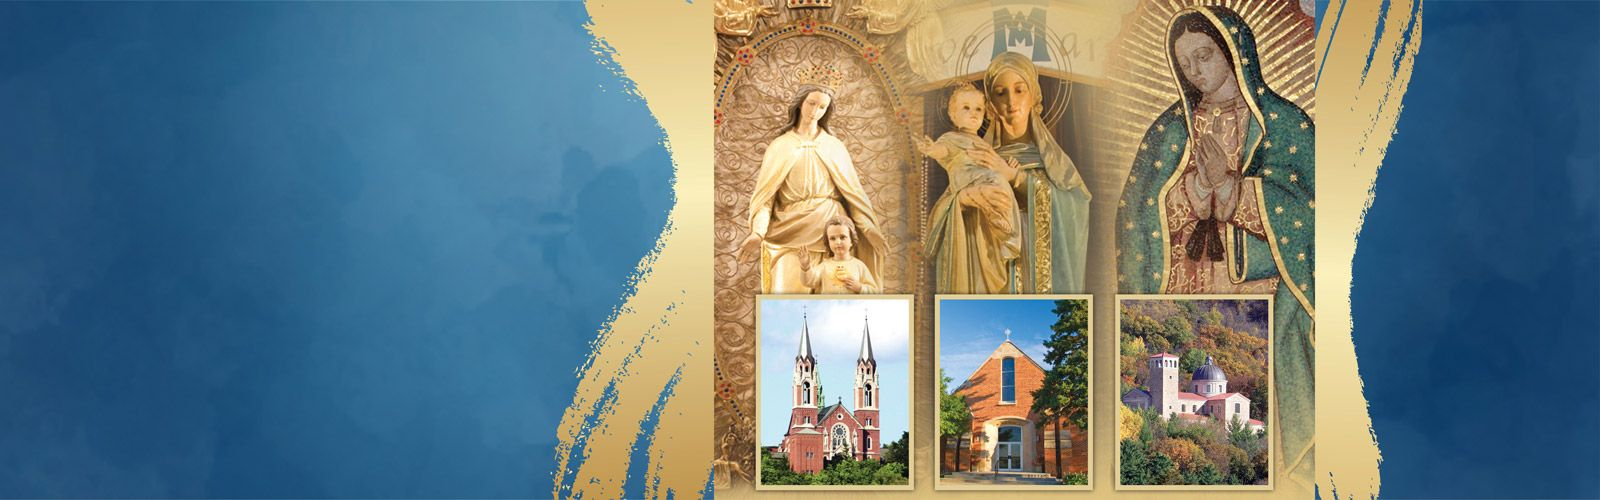 Wisconsin Marian Shrine Pilgrimage